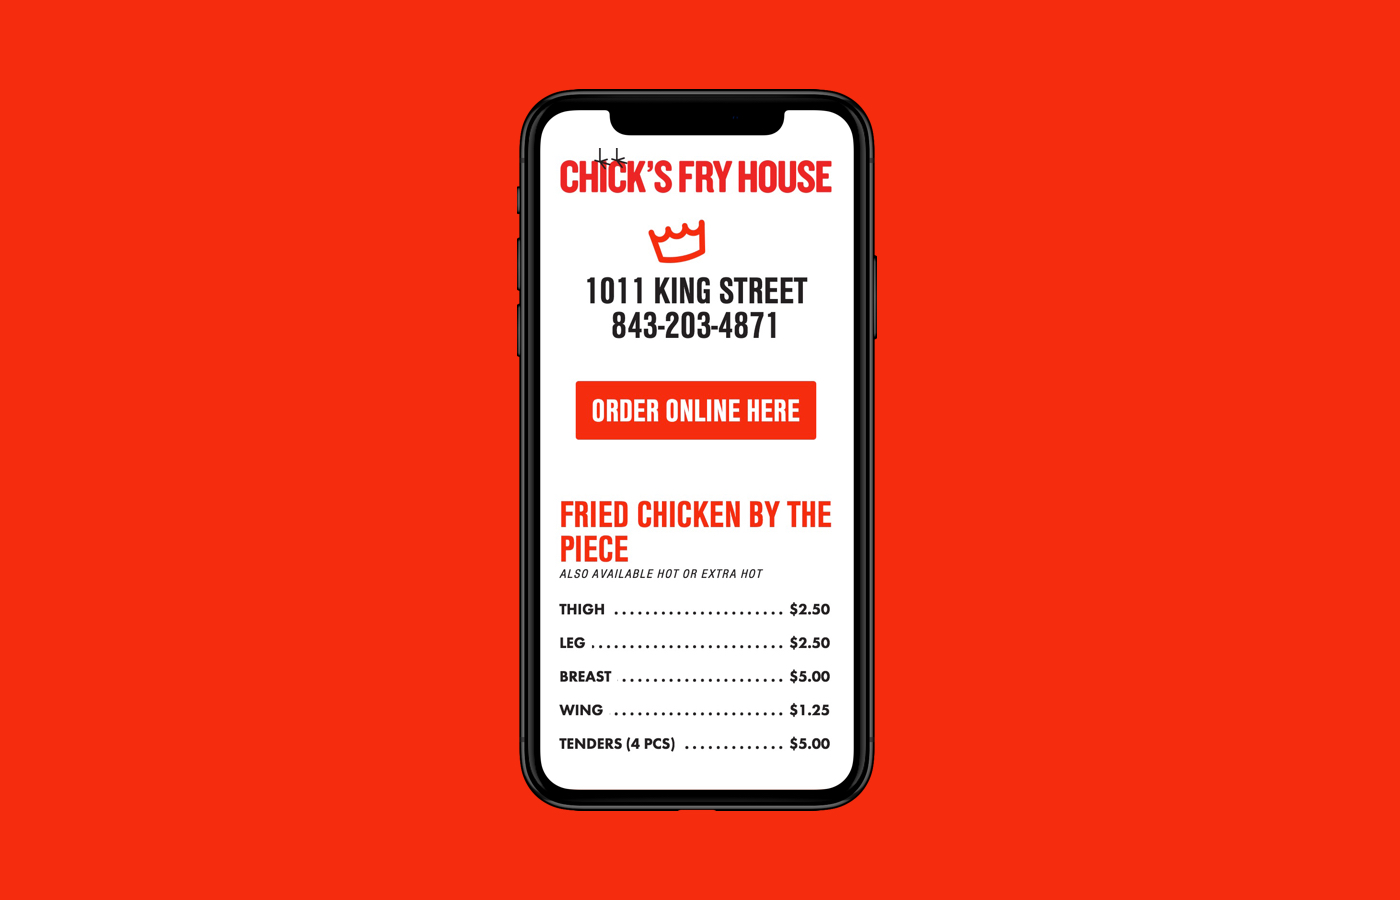 Chick's Fry House